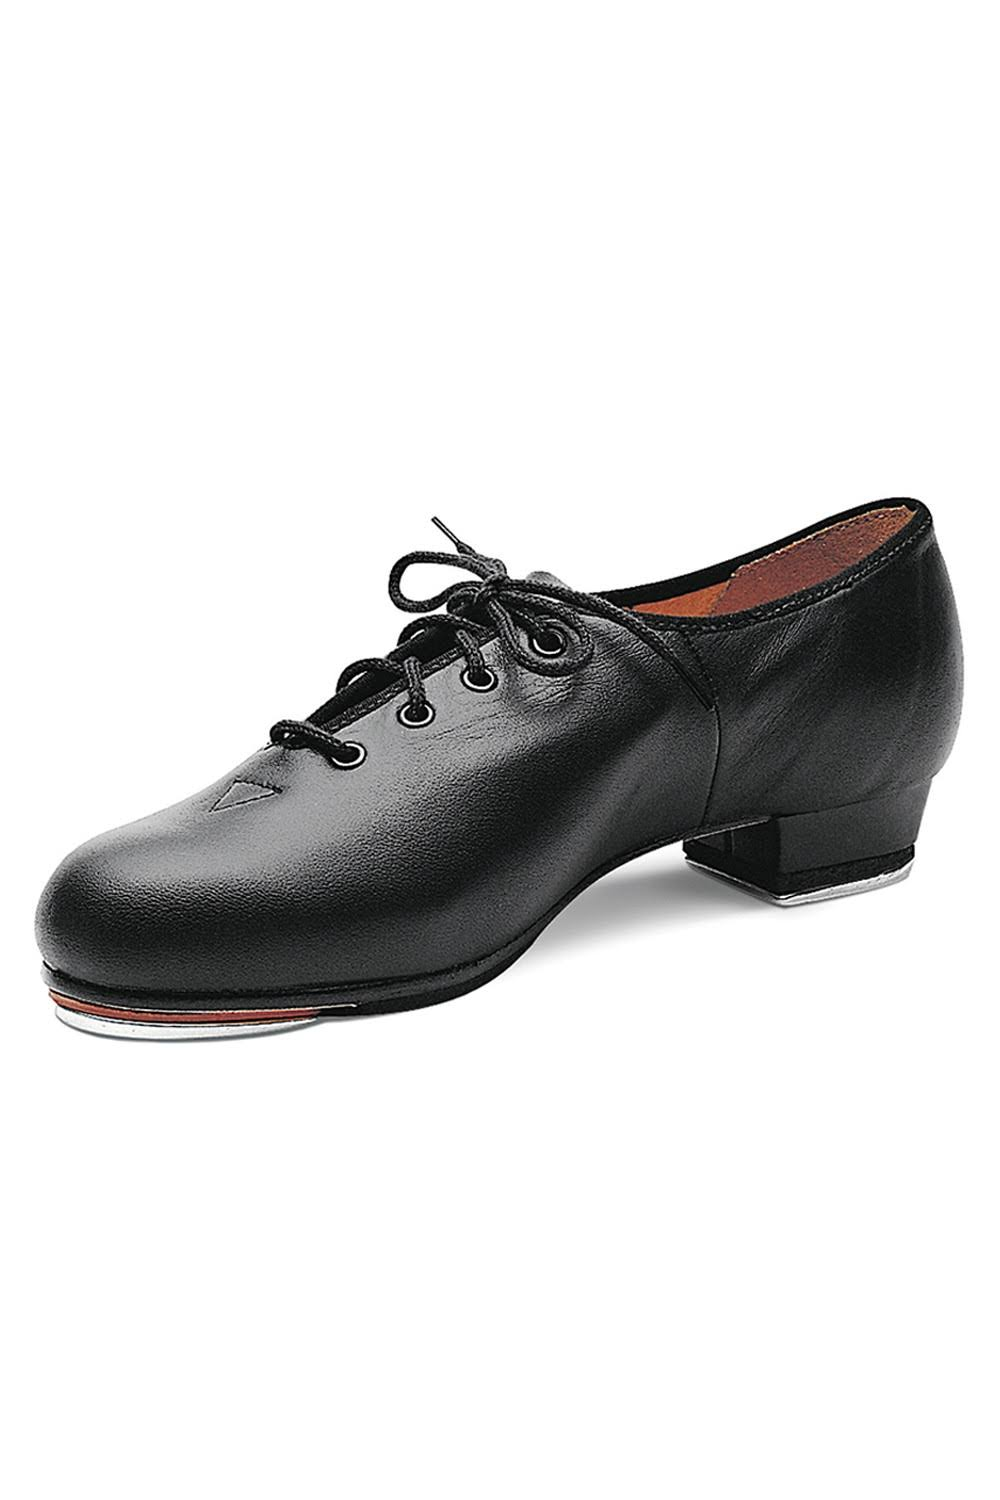 Bloch Dance Jazz Tap Tap Shoe - Youth